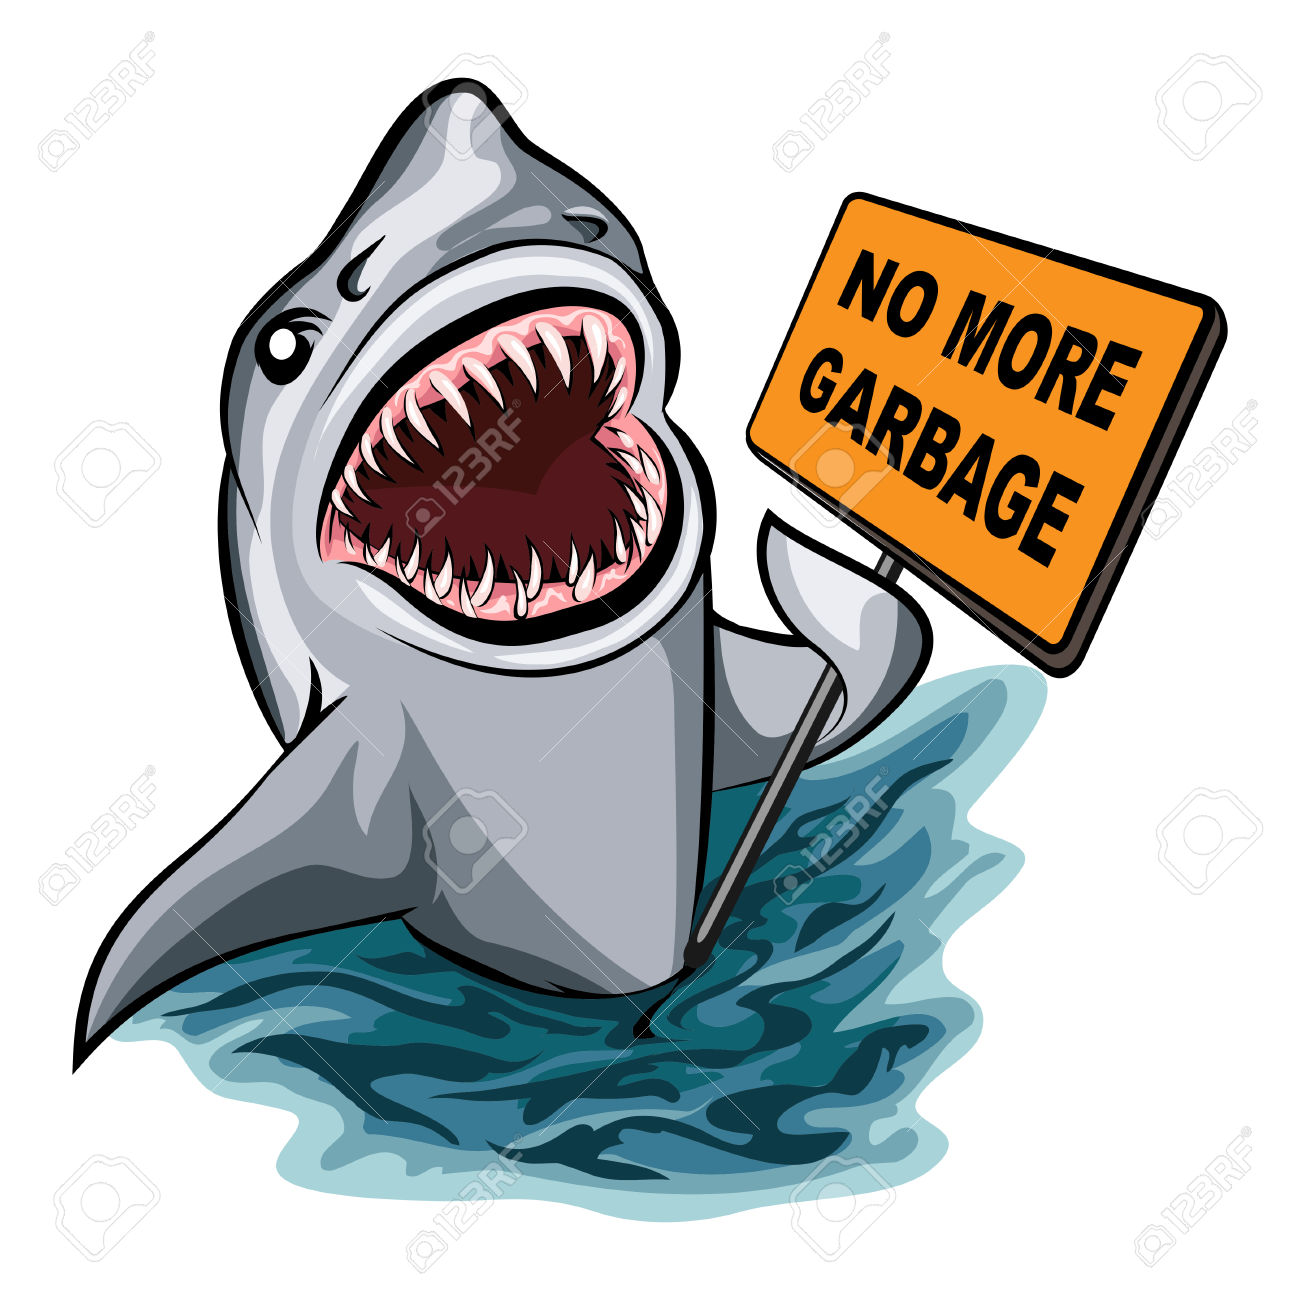 The Shark Voting Against Ocean Pollution And Garbage. Isolated.